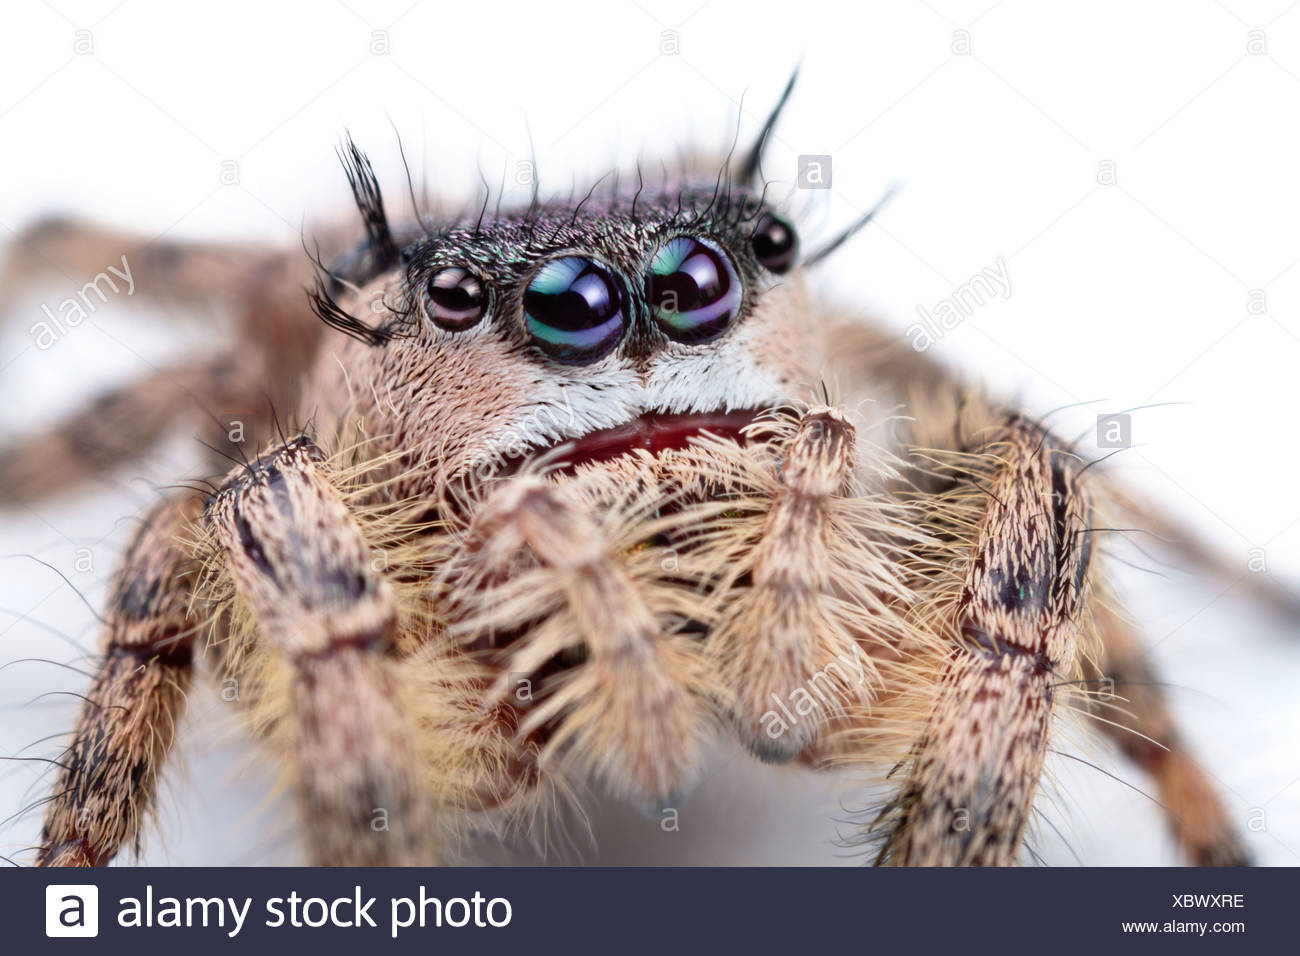 Canopy Jumping Spider female captive, orginating from North America. Size < 1cm - Stock Image